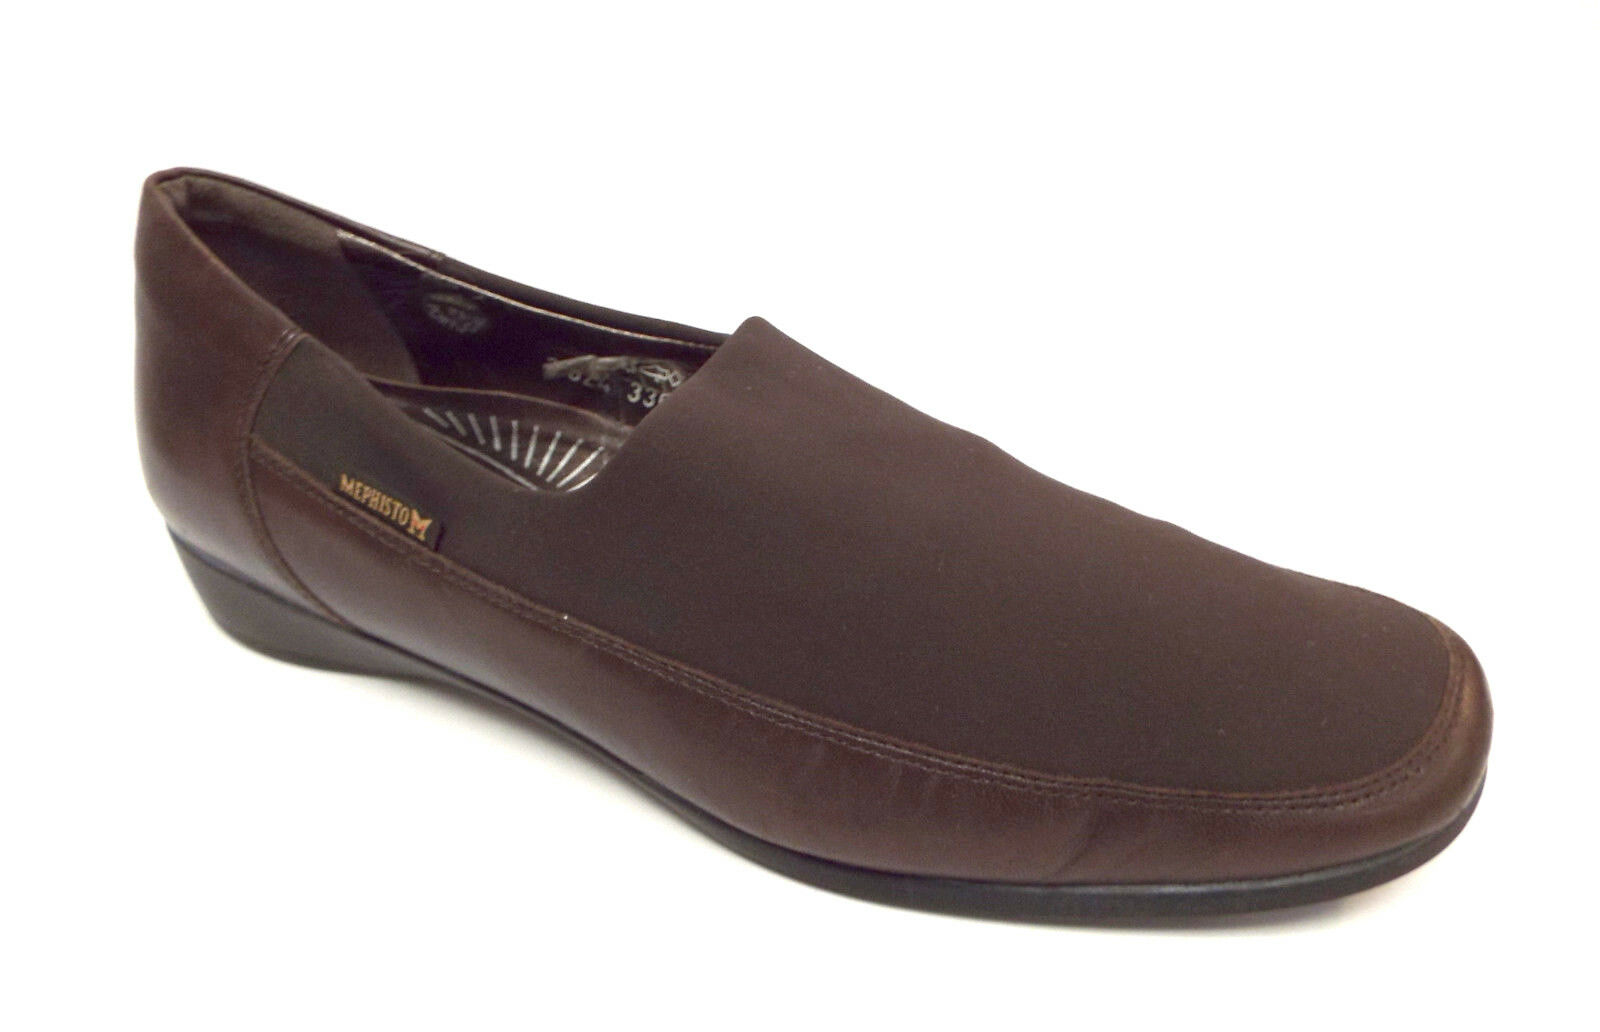 MEPHISTO Air-Relax Size 11 Brown Micro Fiber Leather Loafers Flats shoes